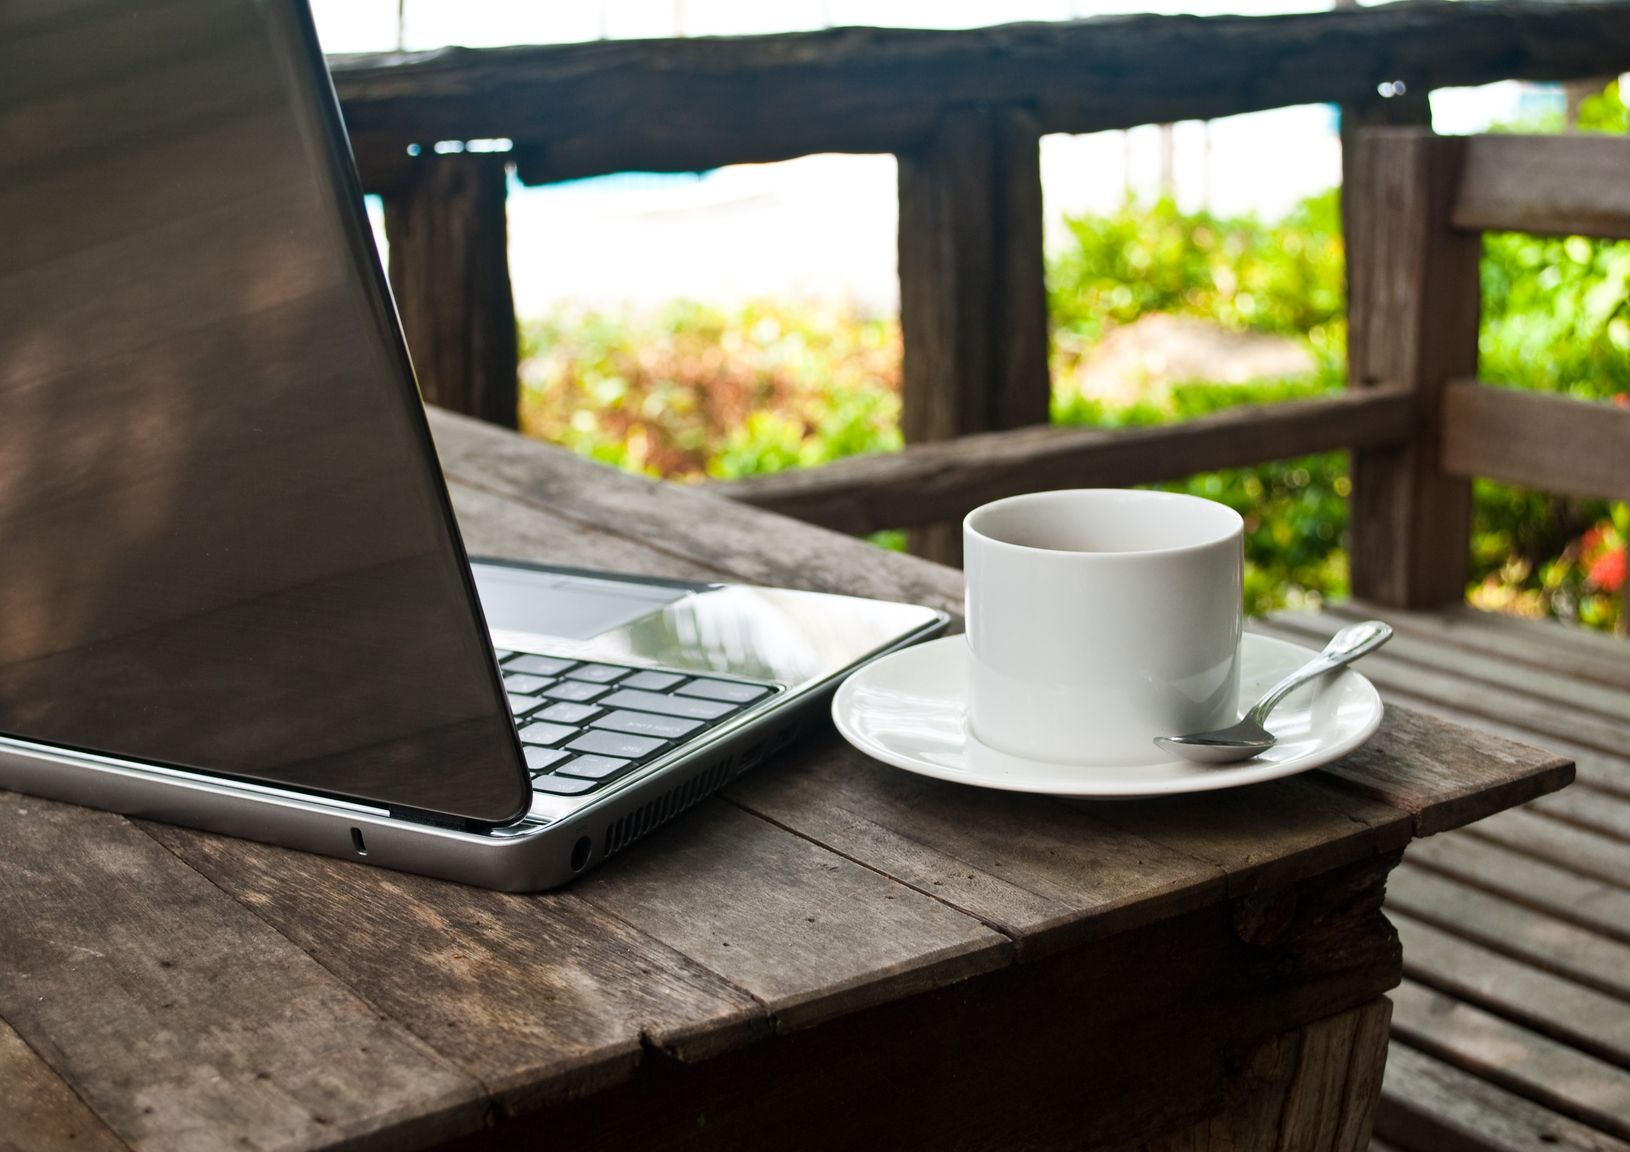 A cup on coffee and a laptop on top of a table outside on a wooden balcony.